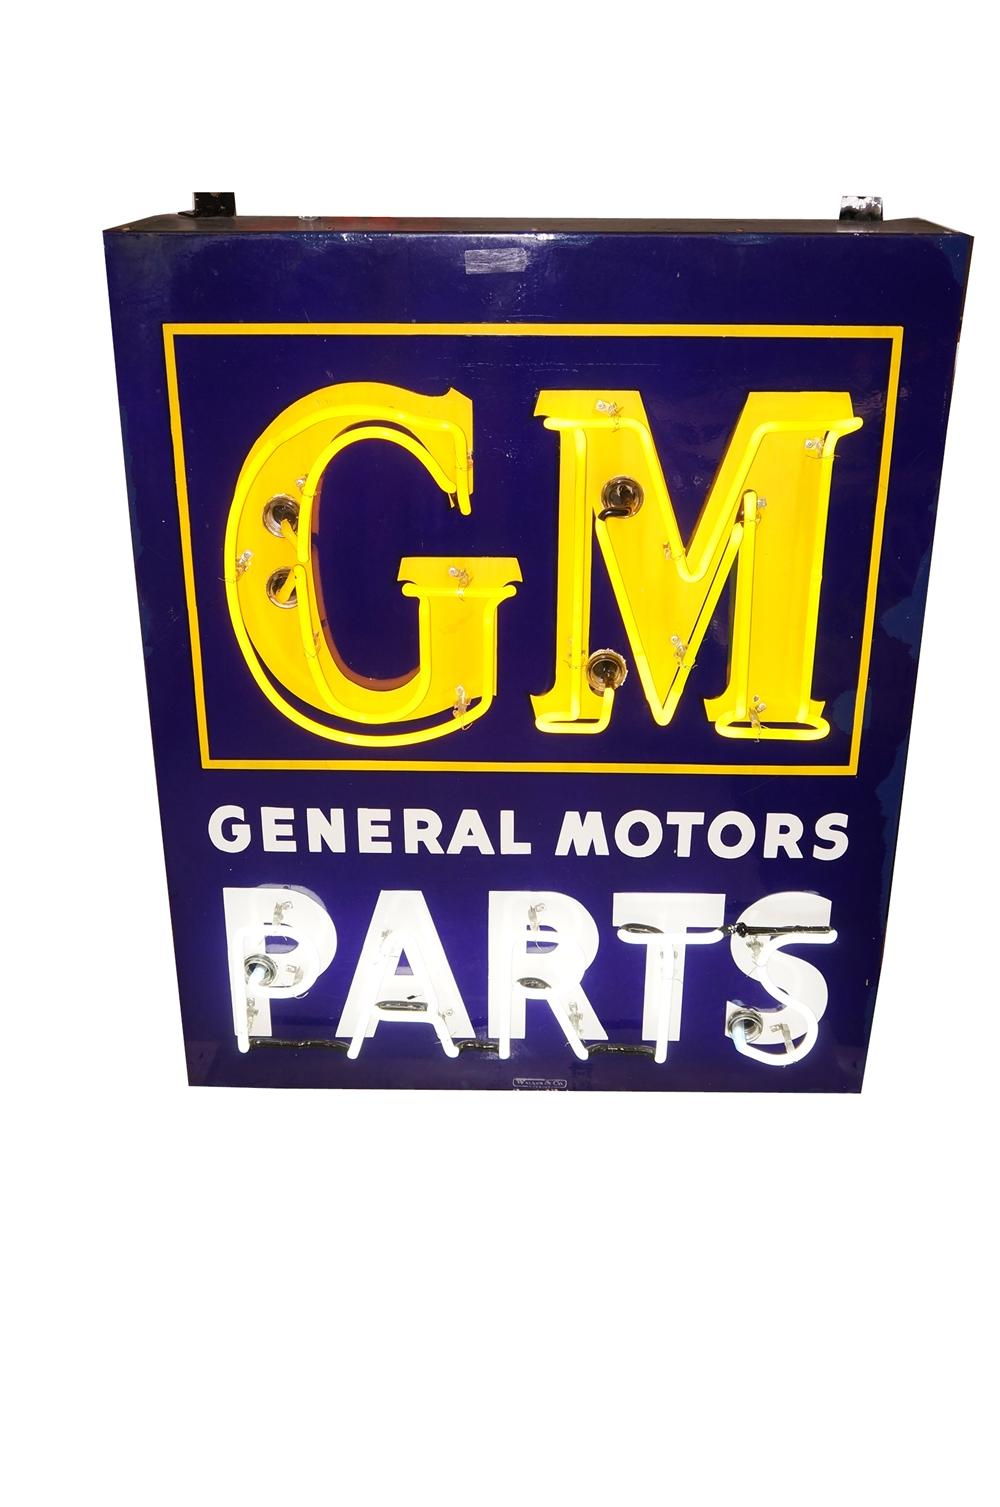 Gm Motors Parts Diagram Reinvent Your Wiring General Engine Striking 1940s 50s Single Sided Neon Rh Barrett Jackson Com 2006 Chevy 22l Powerparts Smart Db76e51